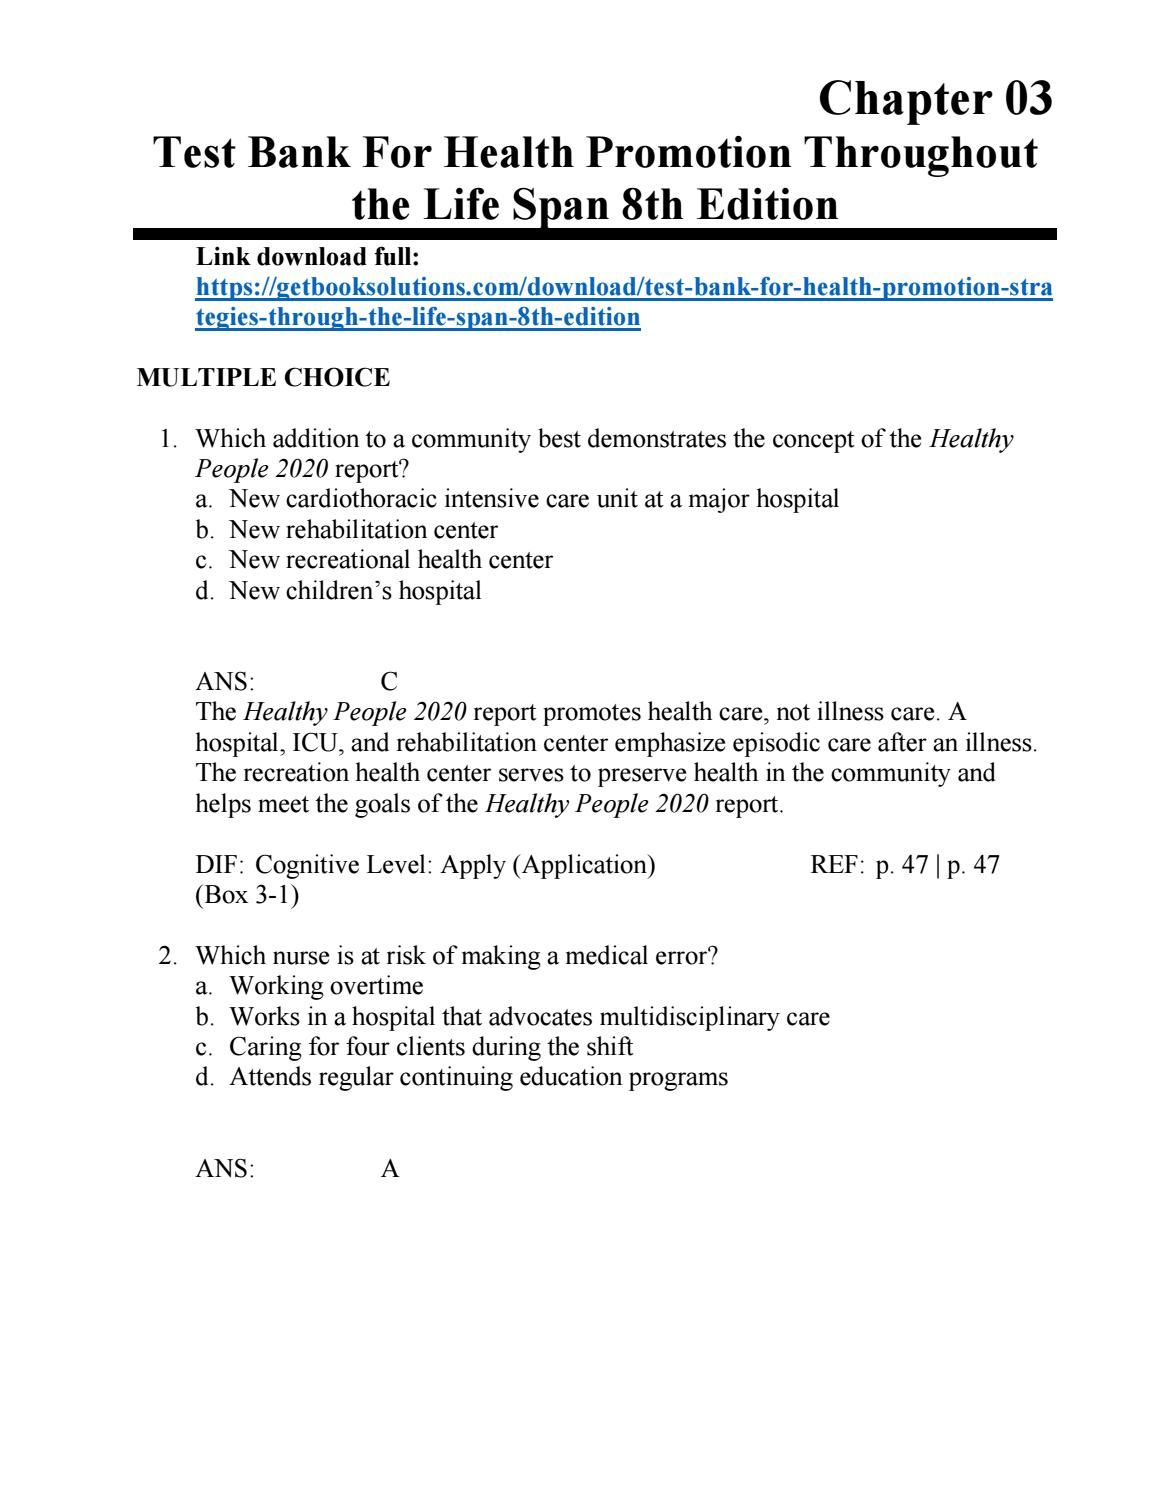 ... answer key for textbook Array - download health promotion strategies  through the life span 8th rh pinterest ie